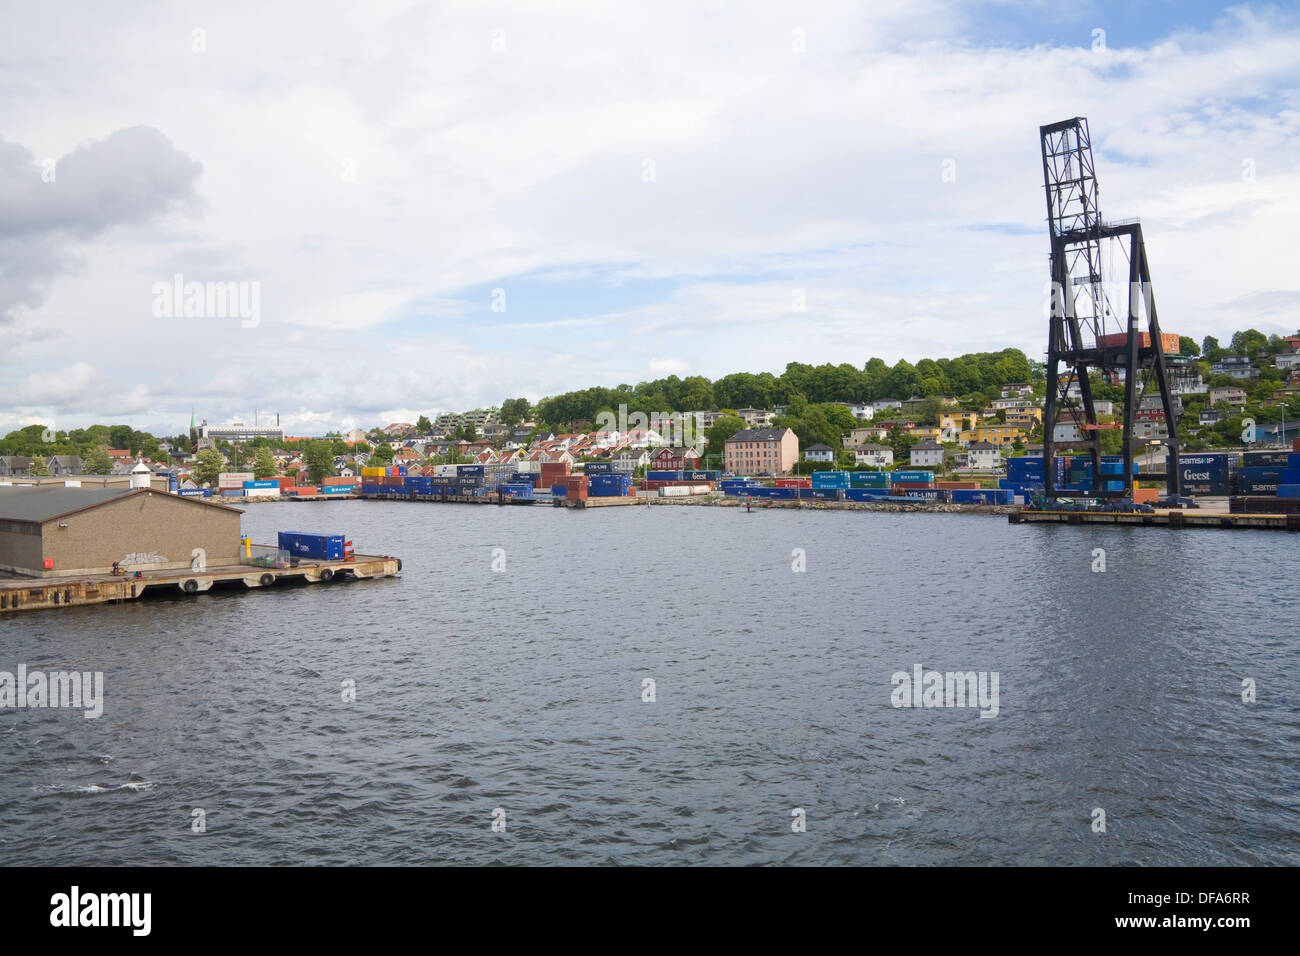 Moss Ostfold Norway Europe Containers piled on harbour front of coastal town on Oslofjord - Stock Image